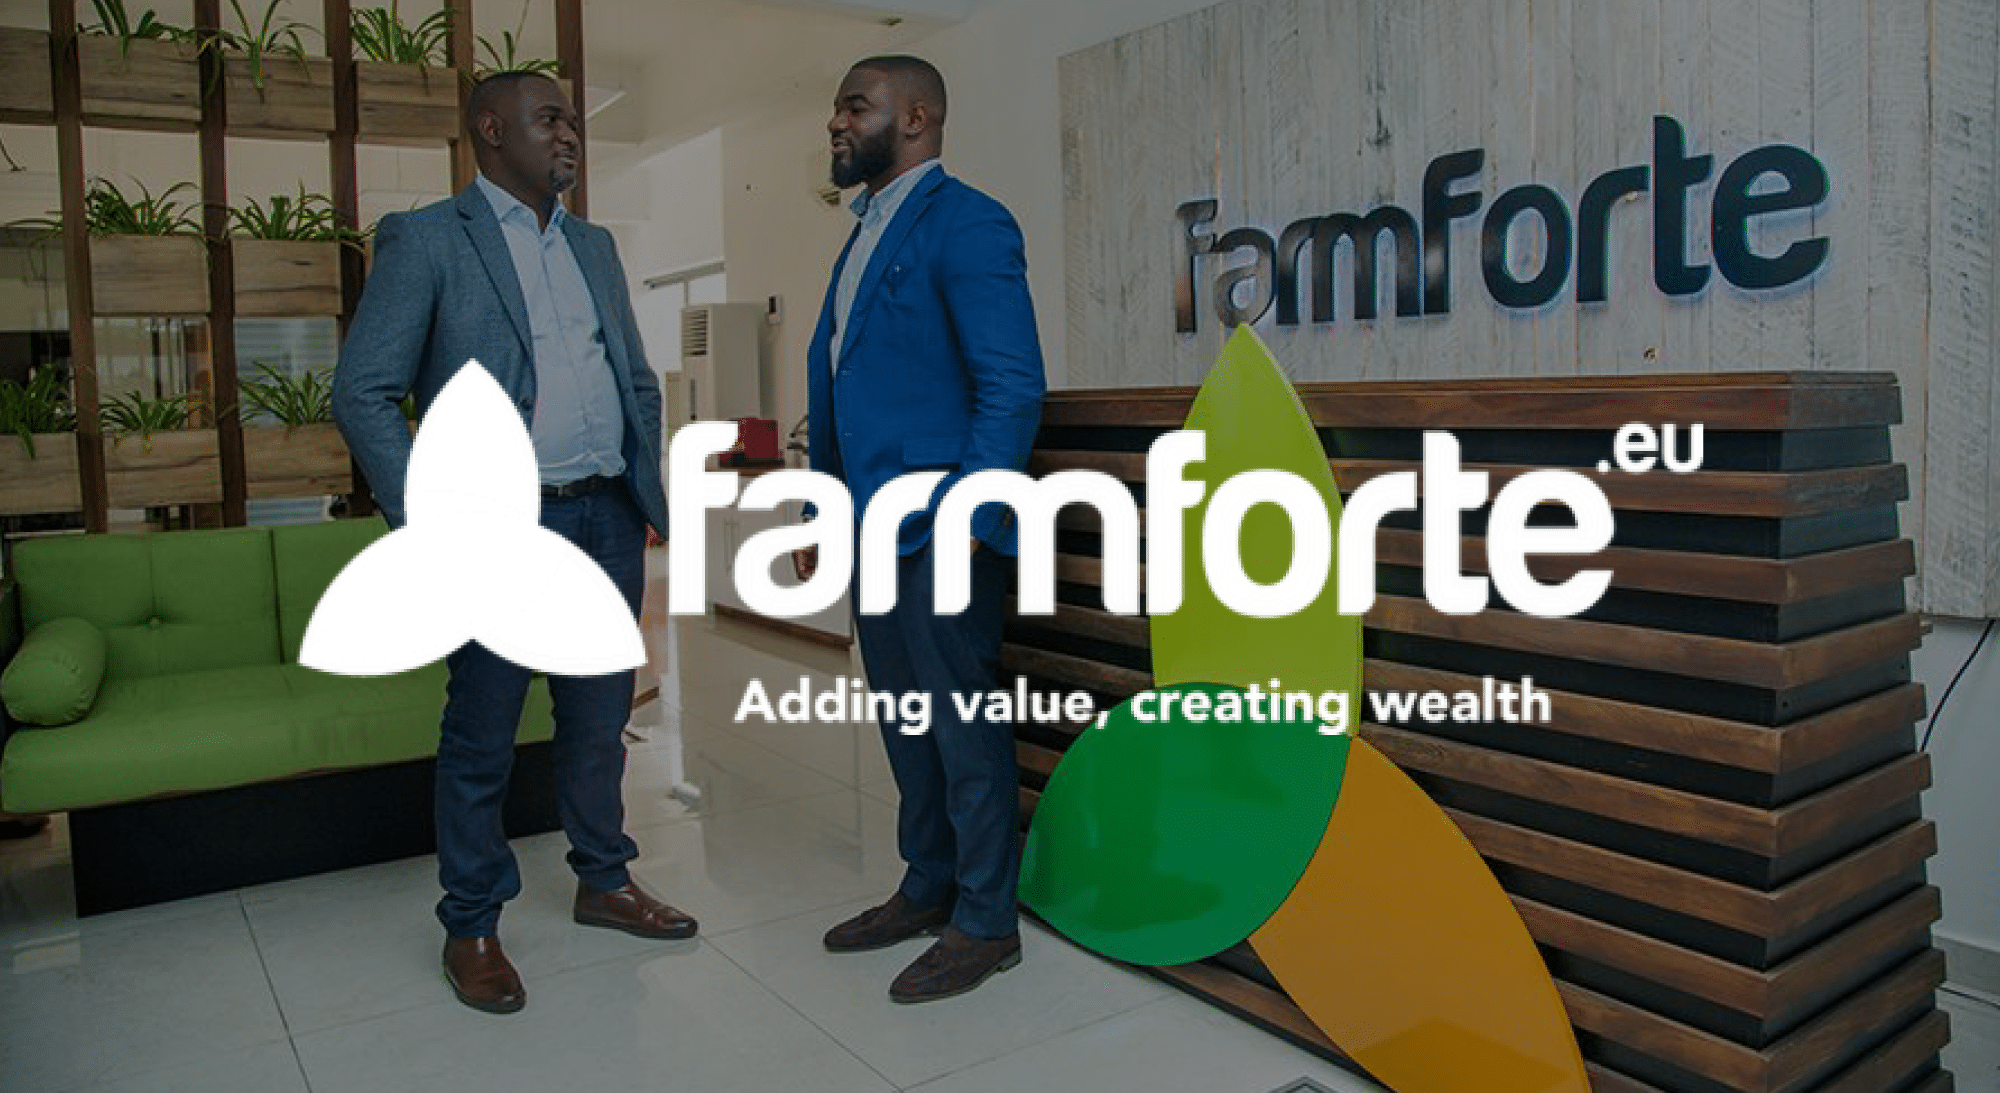 Farmforte is an impact scale-up in food and agri that participated in ScaleUpFood, a program for ventures that are aggressively scaling